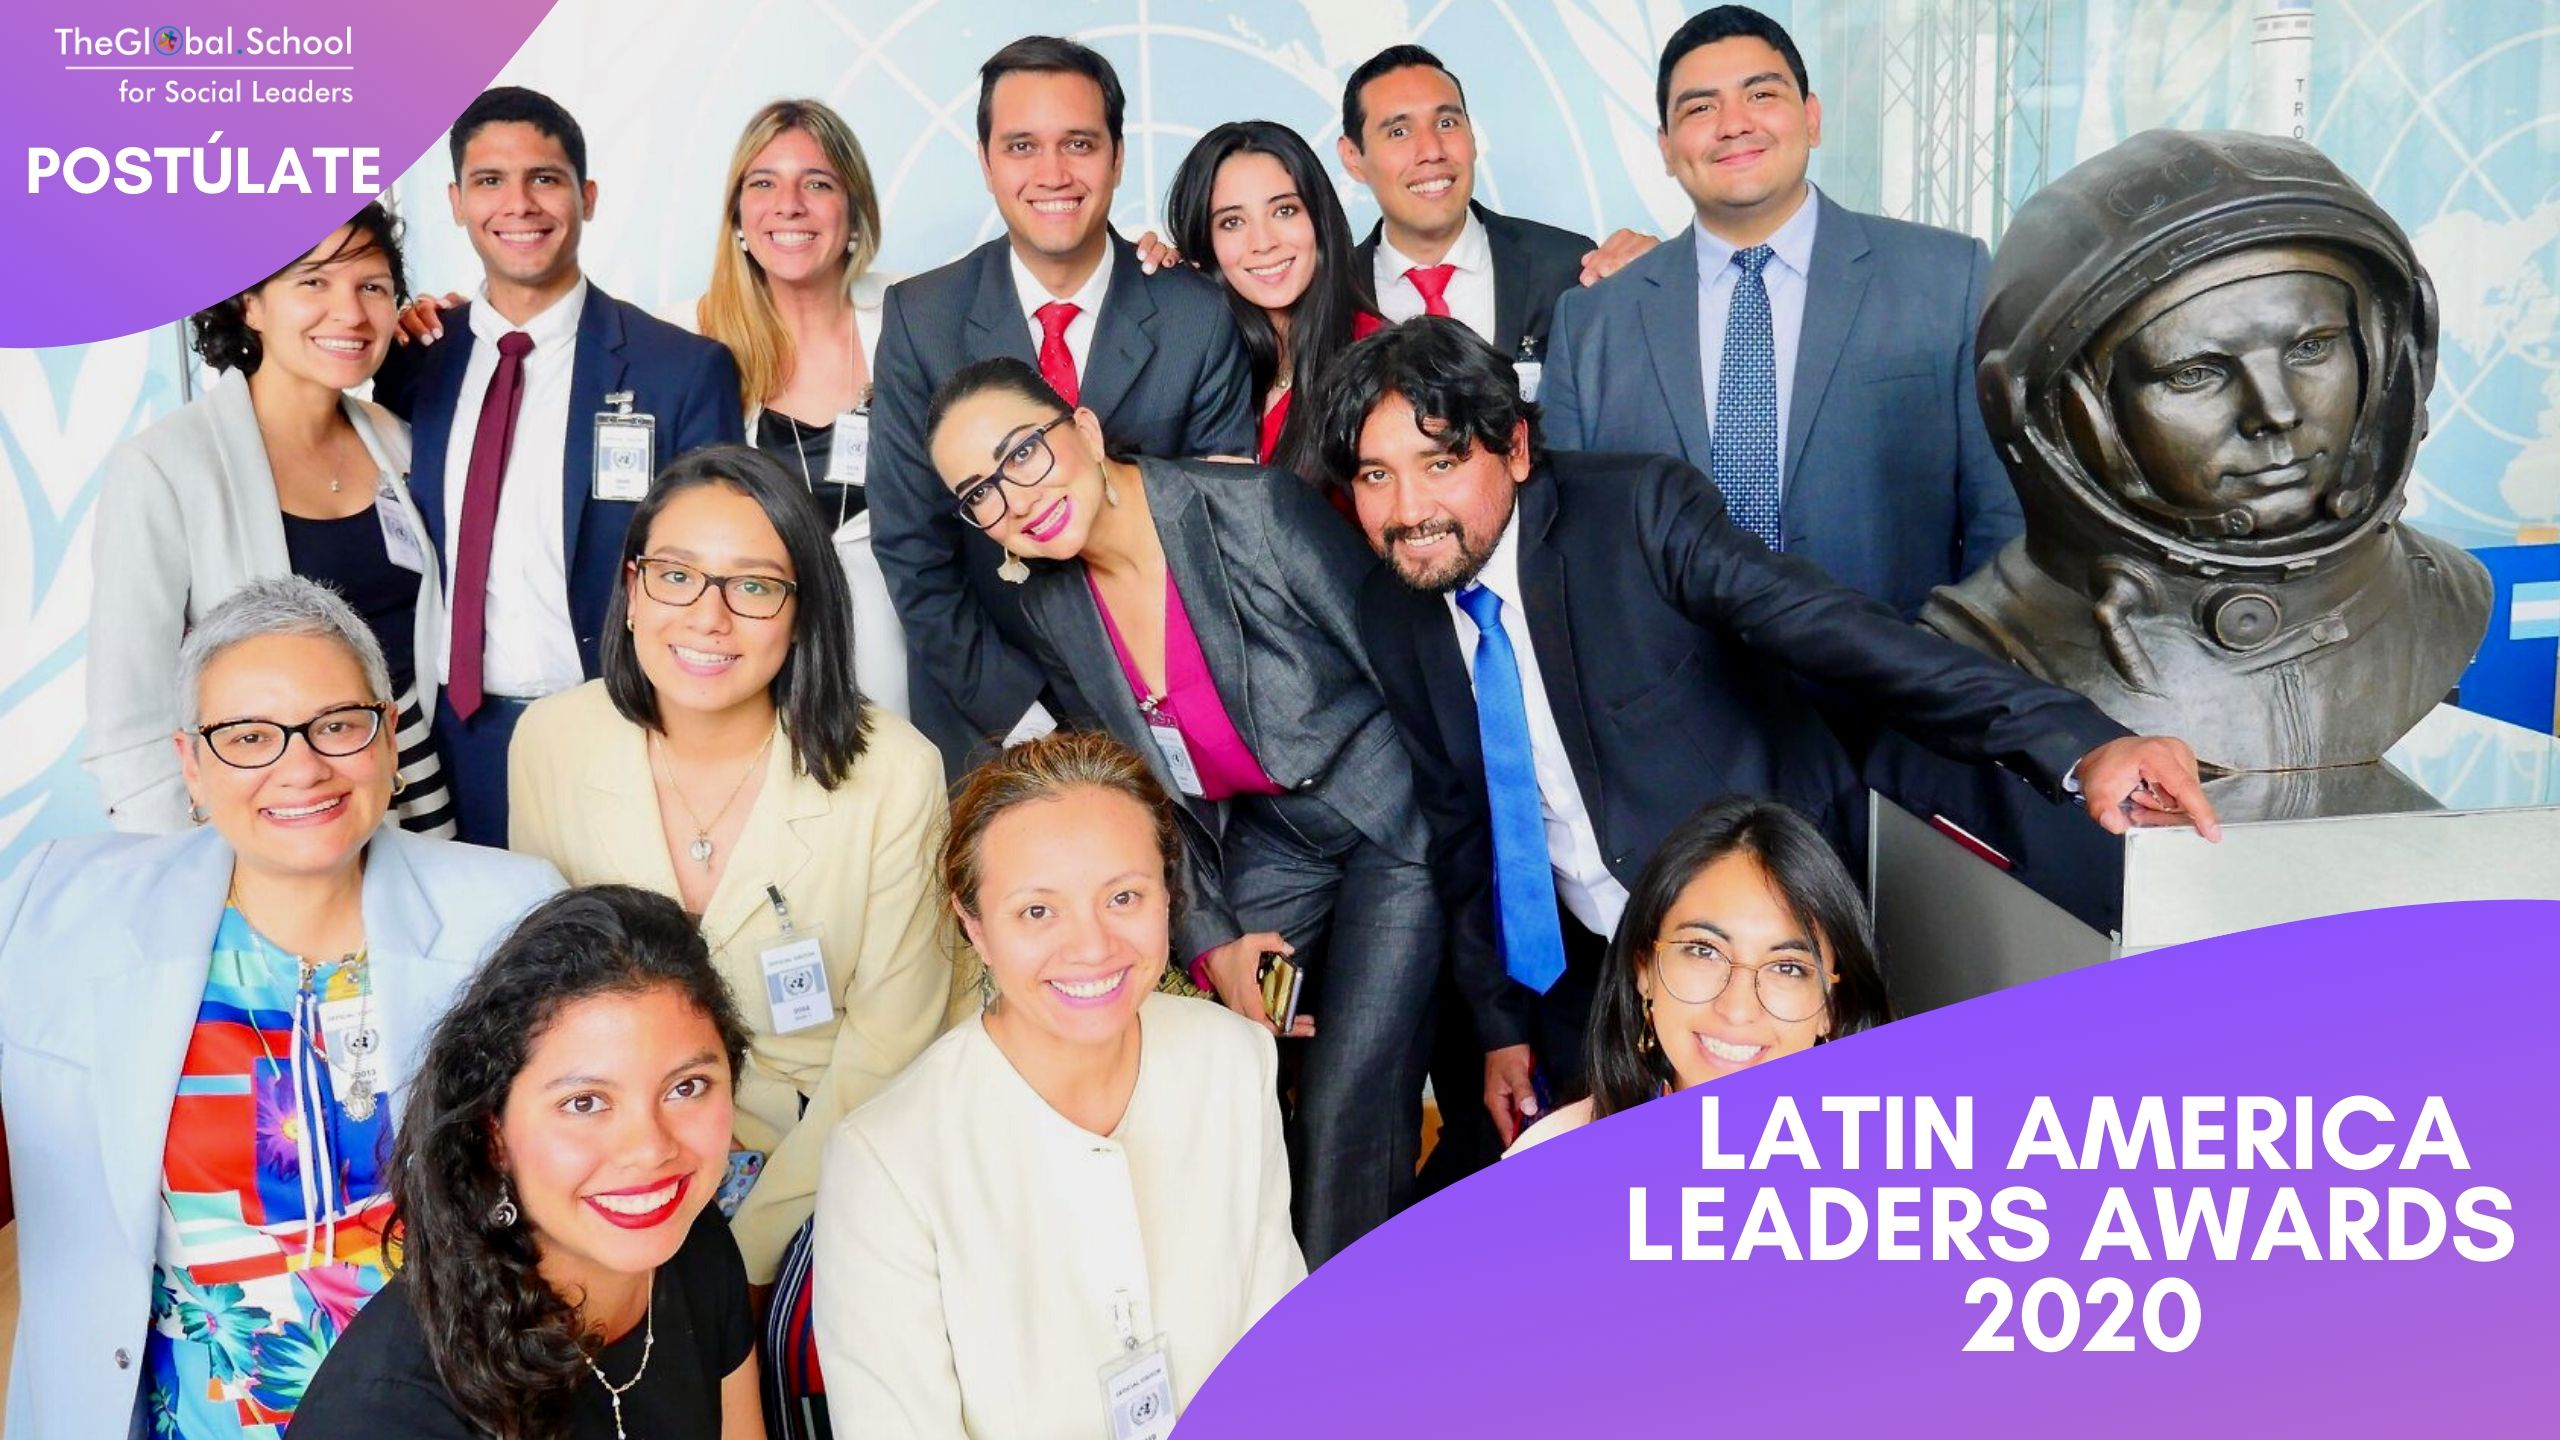 Latin American Leaders Awards